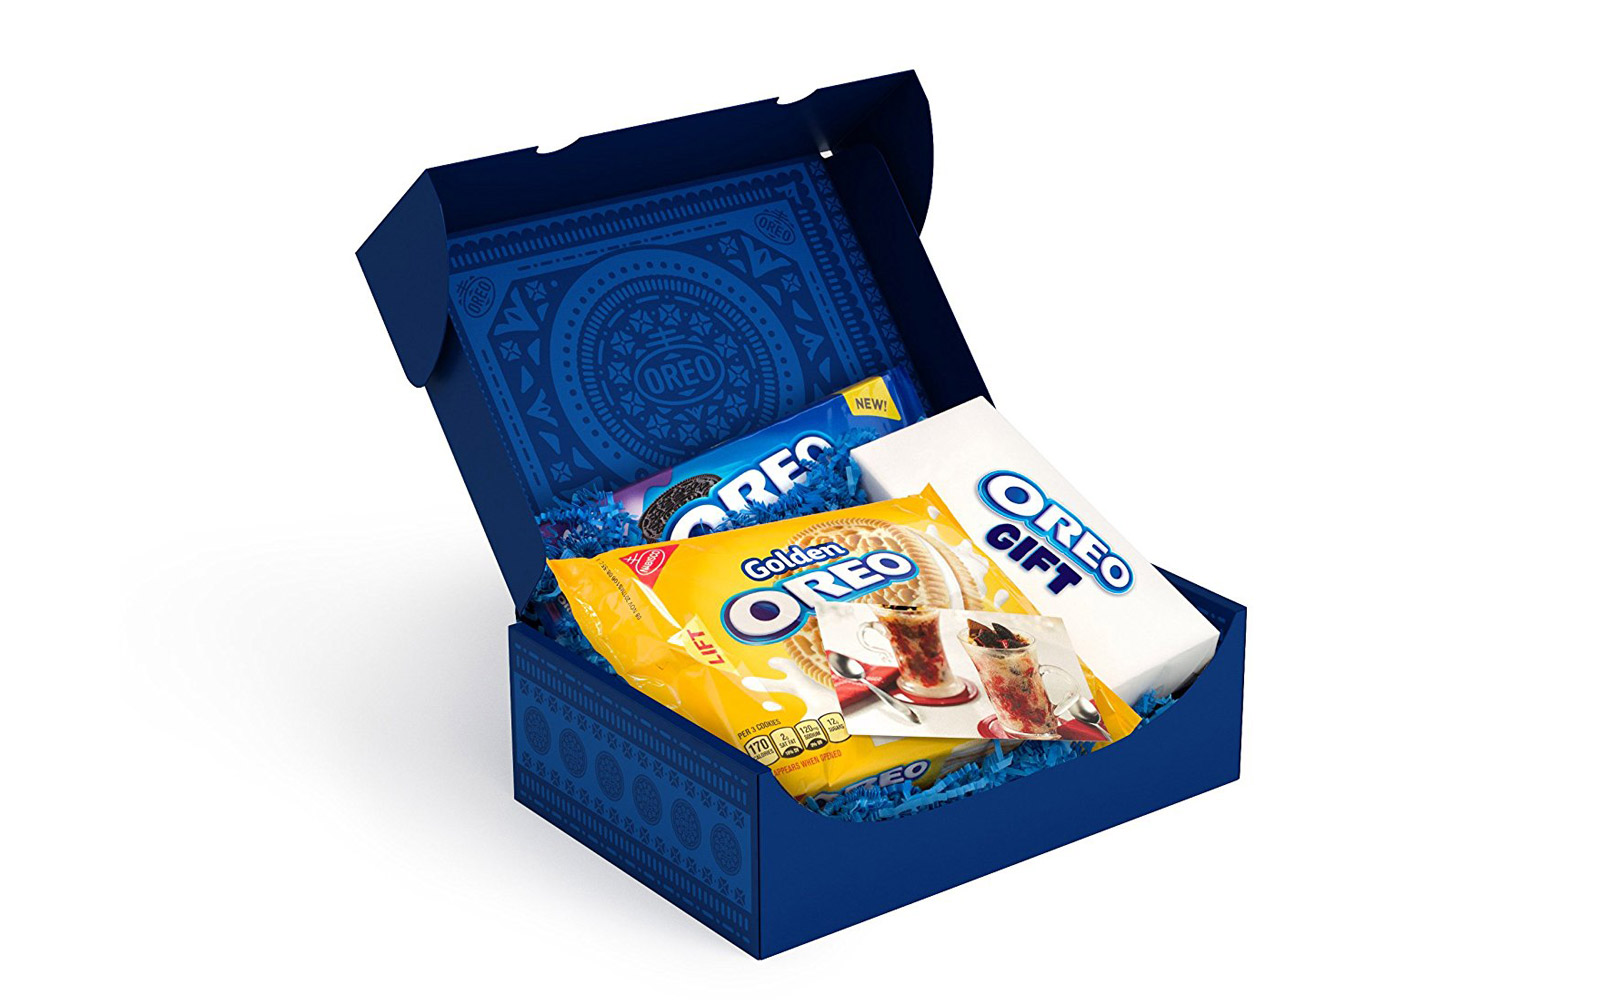 Inside the 'Oreo of the Month Gift' Box